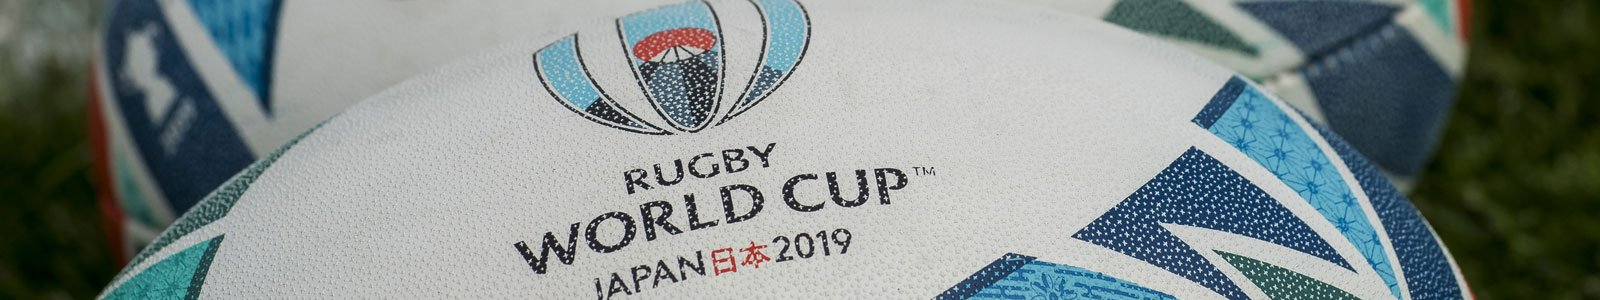 Rugby World Cup 2019 TV Coverage - Where to watch all the games